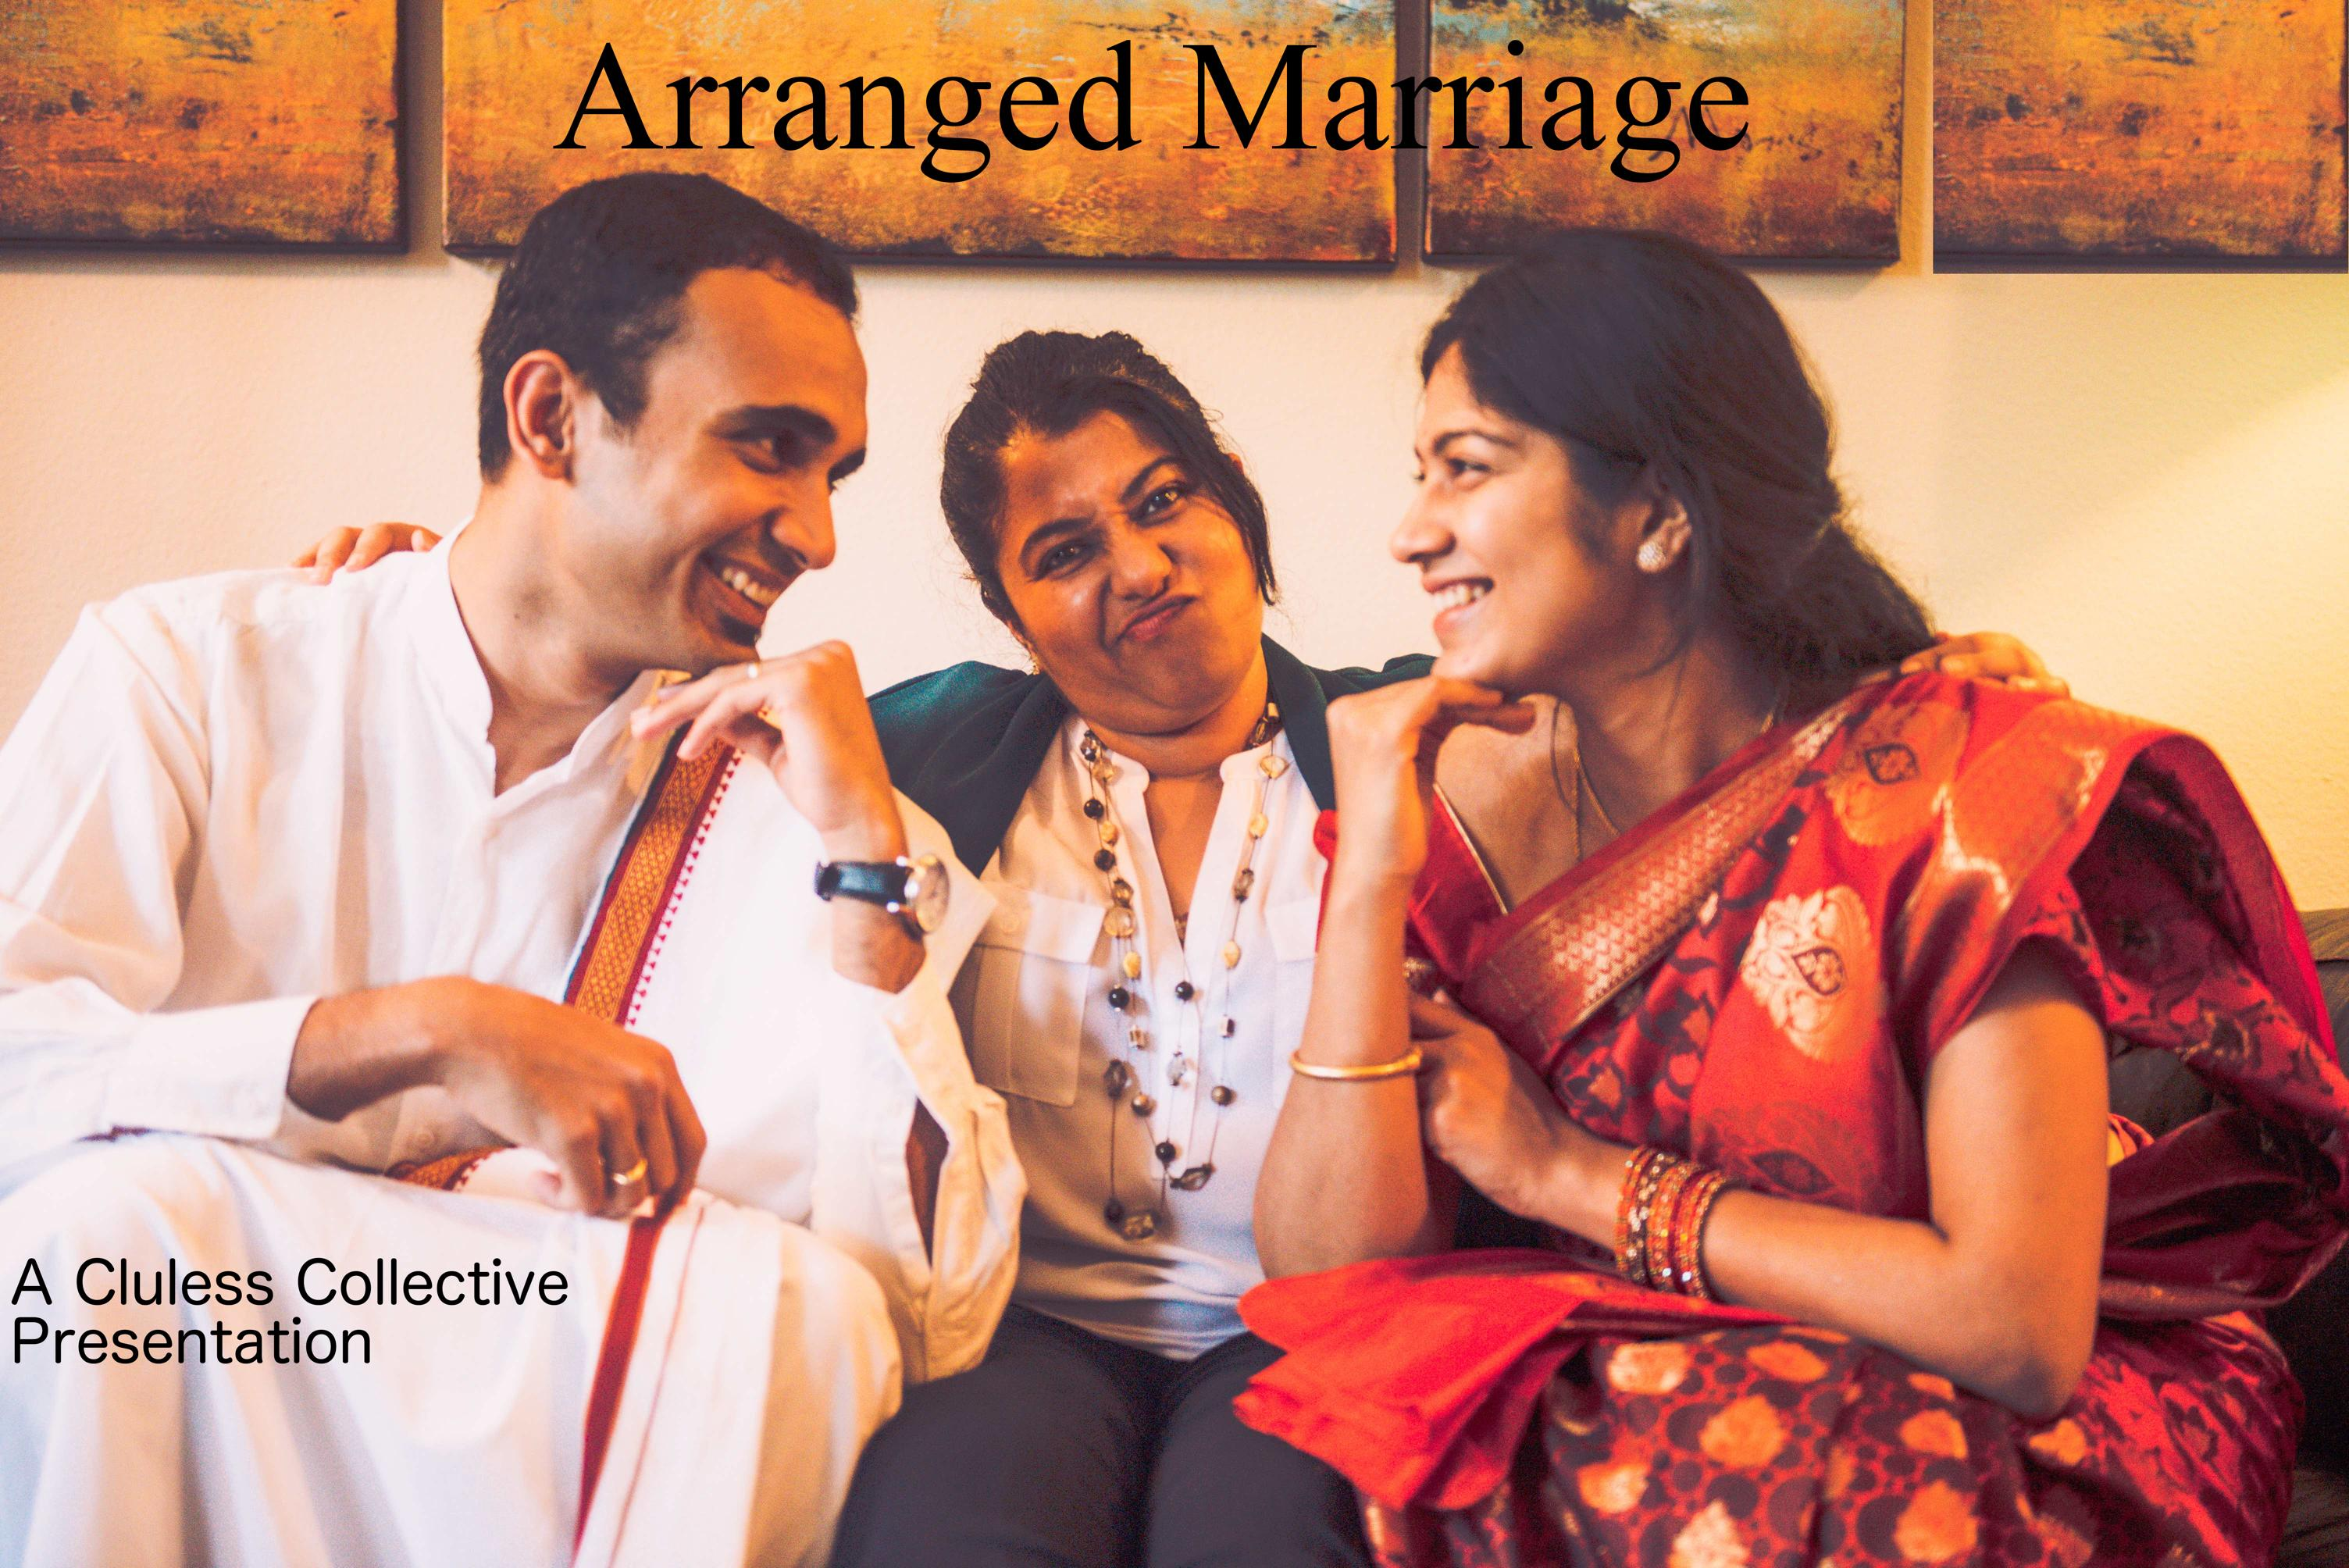 the arranged marriage movie